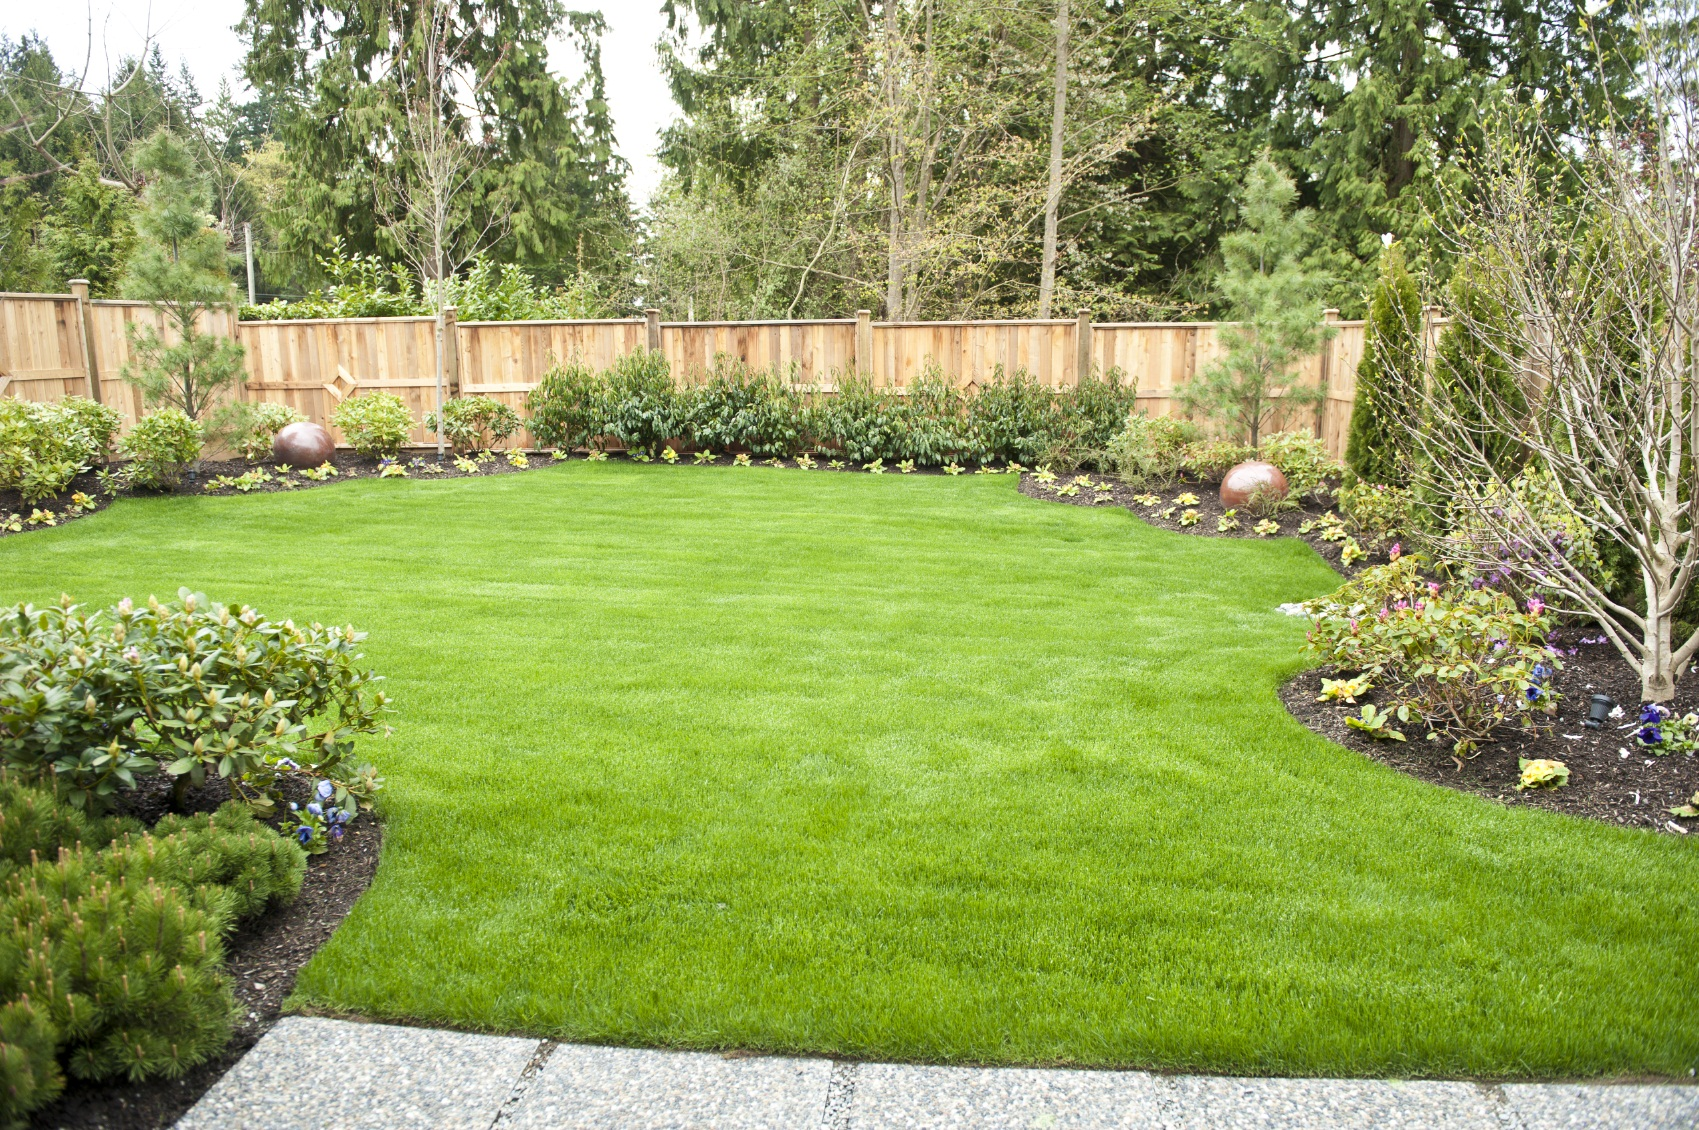 Backyard landscaping for privacy large and beautiful Backyard landscape photos ideas